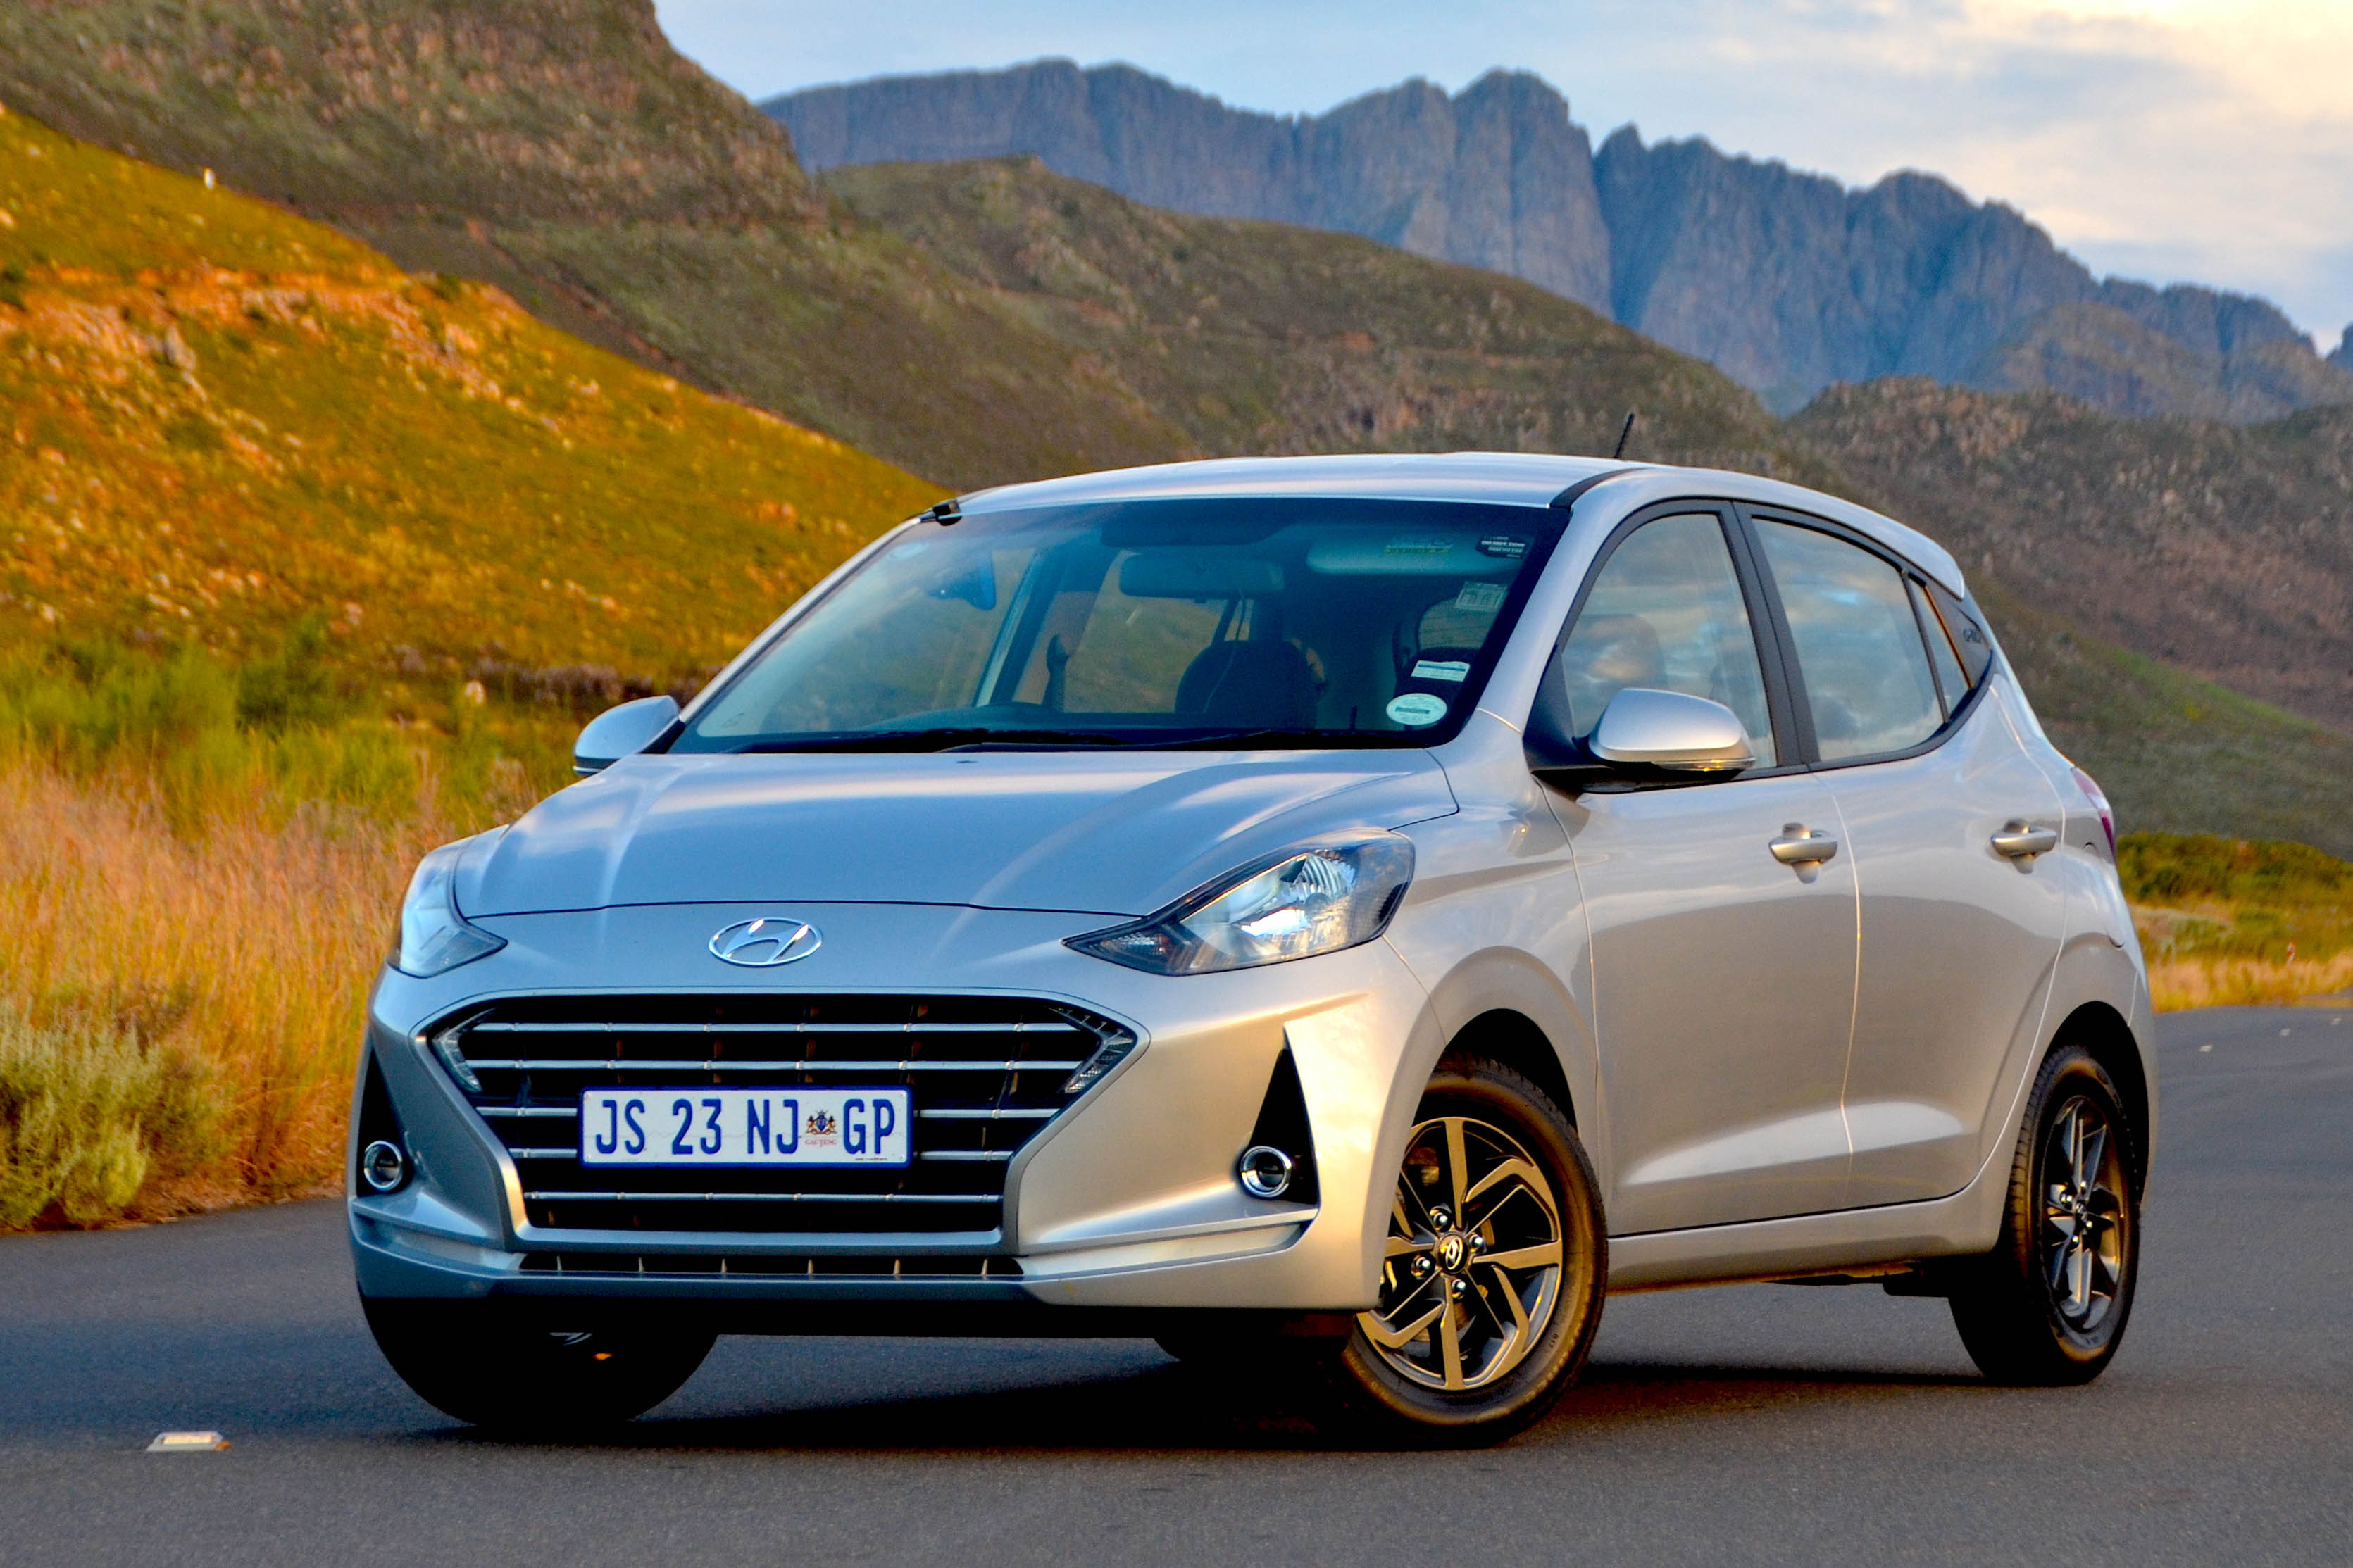 FOR BETTER OR FOR WORSE – HYUNDAI GRAND i10 ON TEST